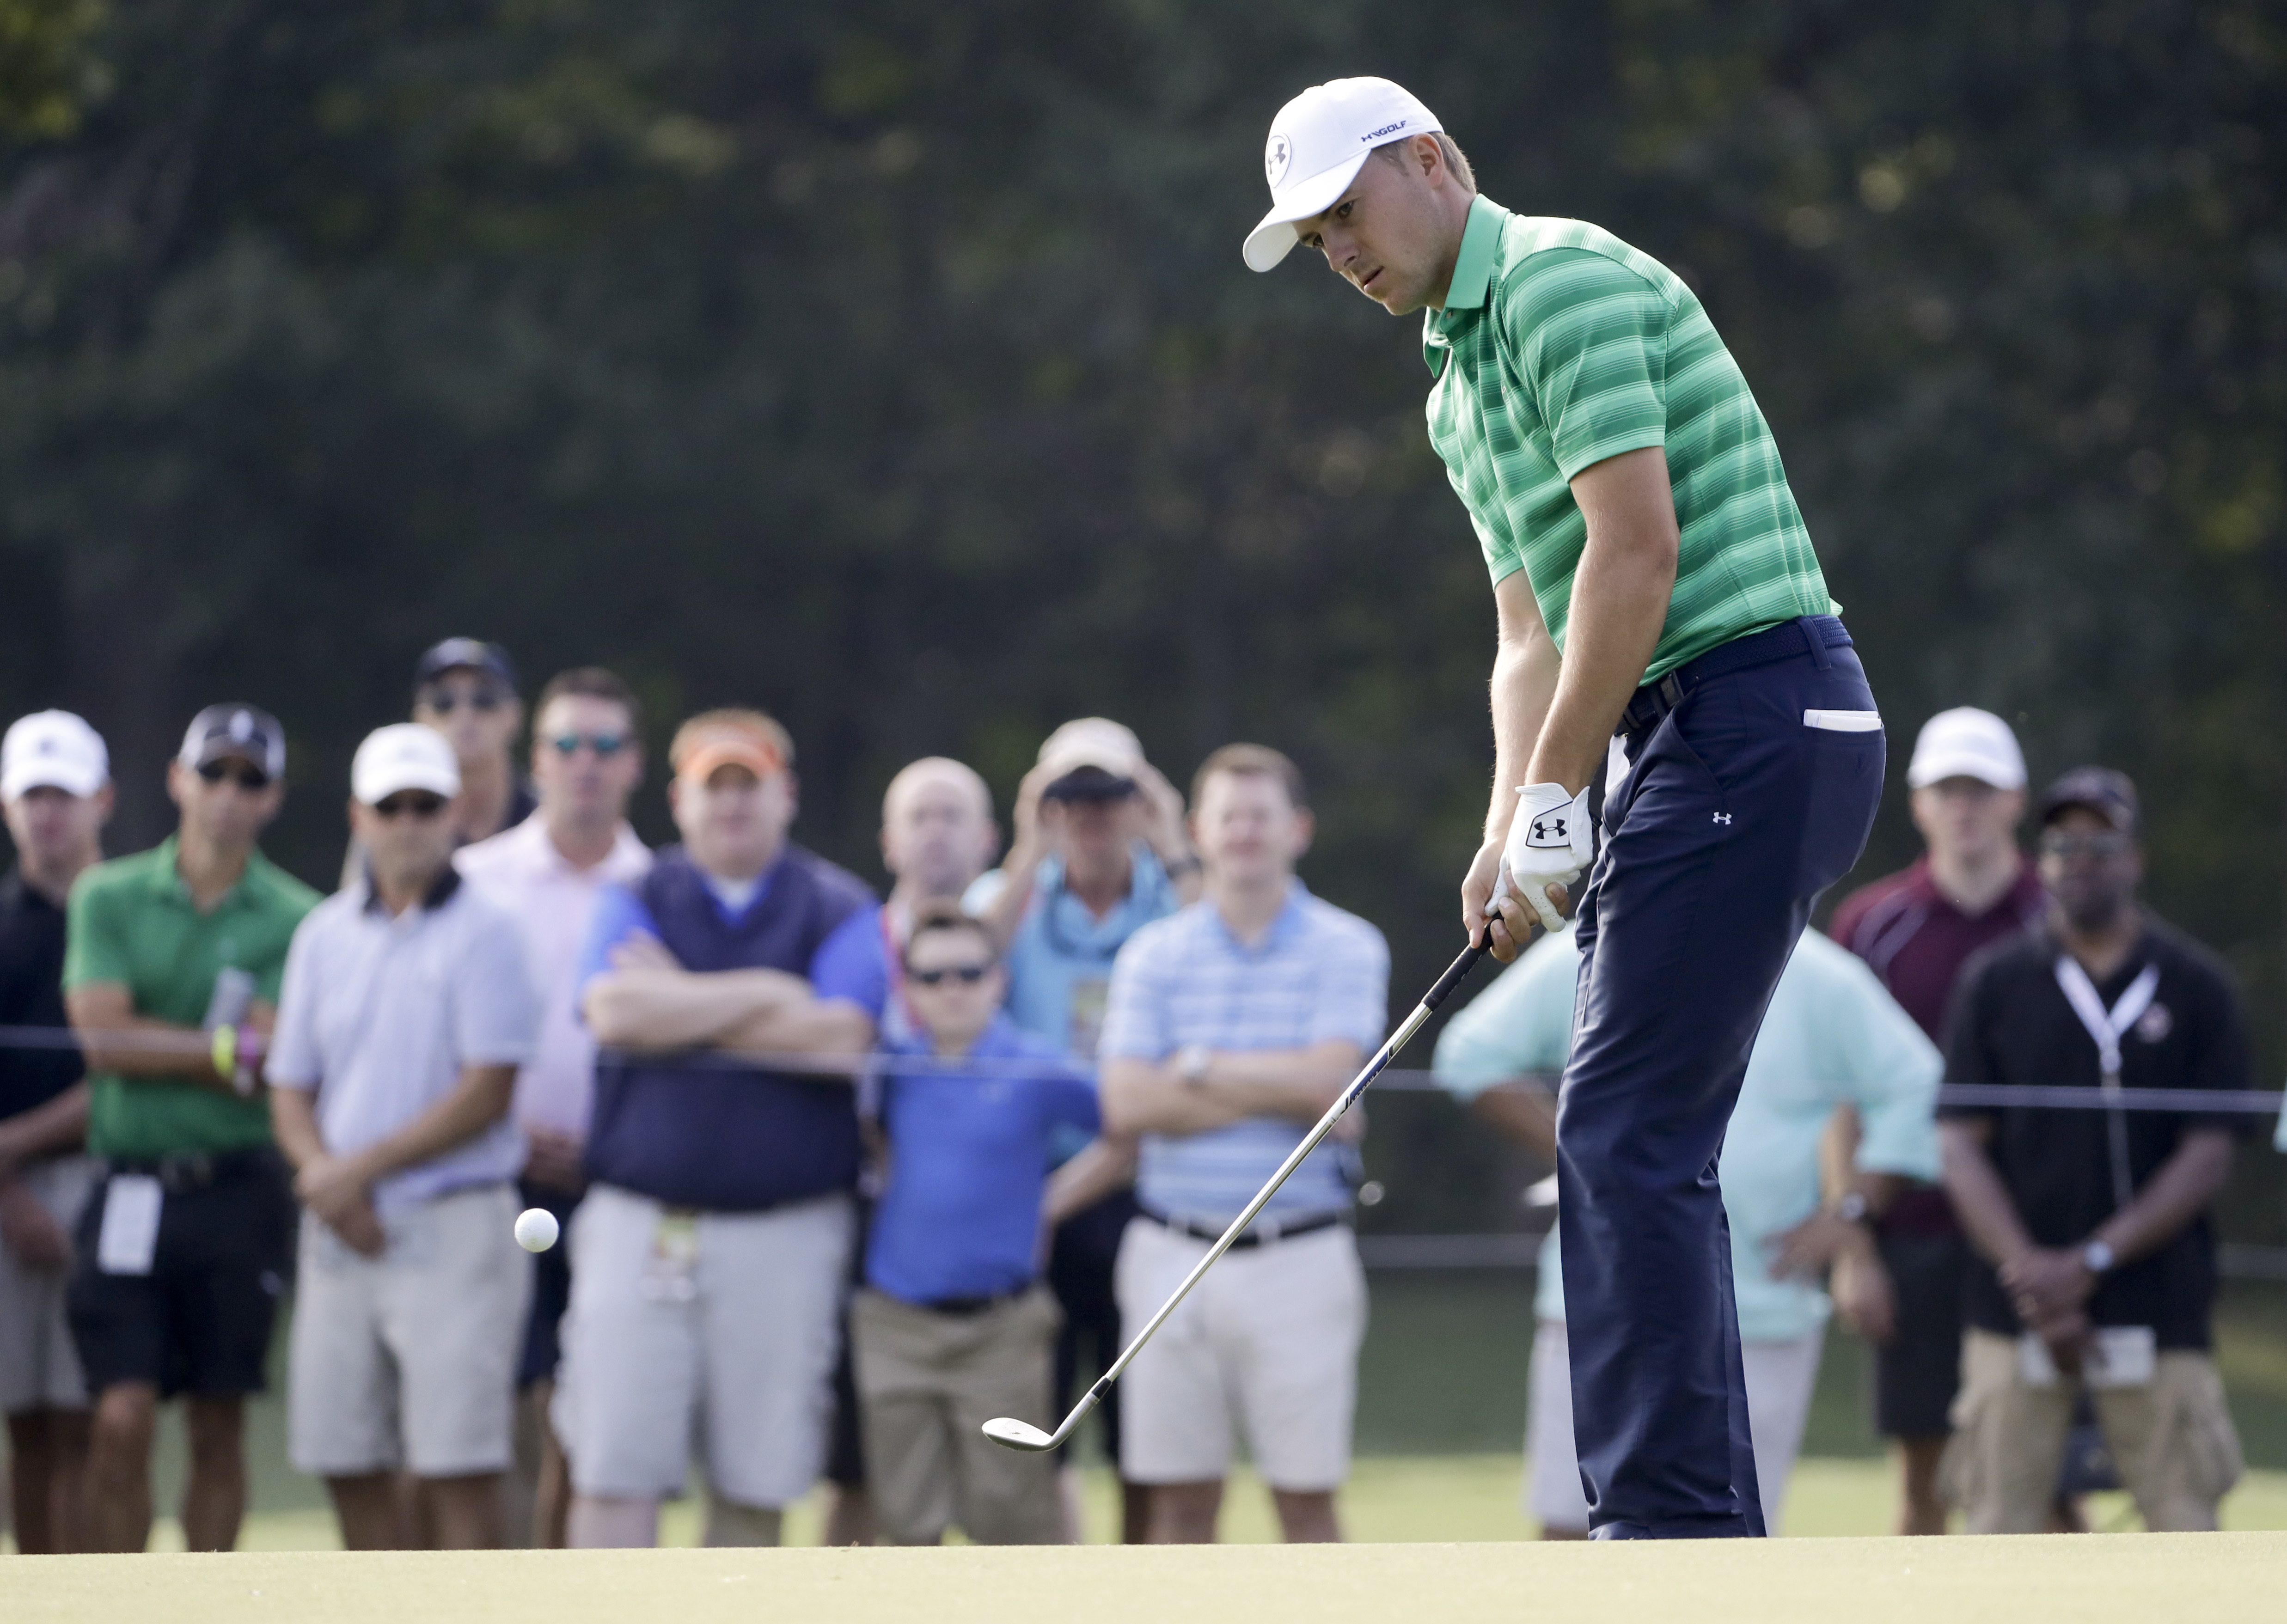 Jordan Spieth chips to the 11th green during the first round of the PGA Championship golf tournament at the Quail Hollow Club Thursday, Aug. 10, 2017, in Charlotte, N.C. (AP Photo/Chris O'Meara)